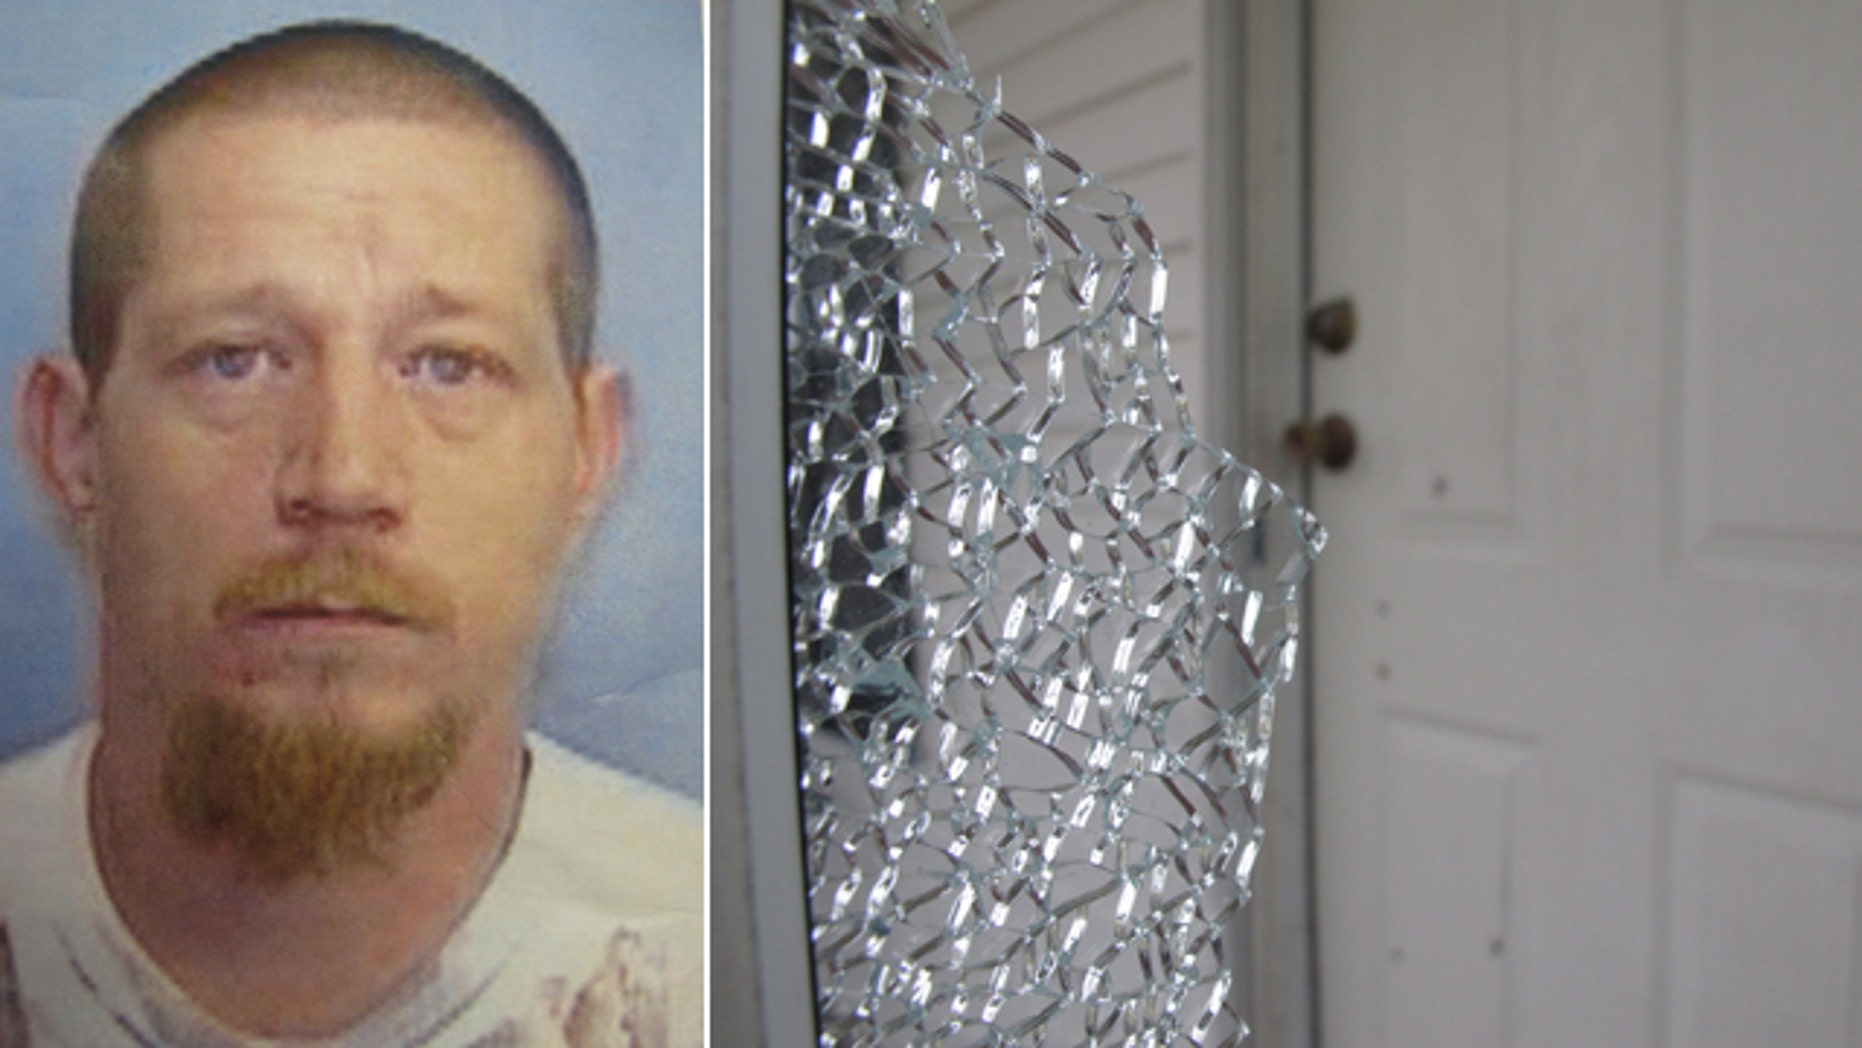 July 30, 2014: The undated photo at left shows Andrew Michaelis of Fayetteville, N.C. Police say Michaelis killed his father-in-law and a 10-year-old boy, before wounding at least three officers. At right, a shattered storm window stands near a bullet-riddled door at a home. (AP Photo/Cumberland County Sheriff's Office/Allen G. Breed)